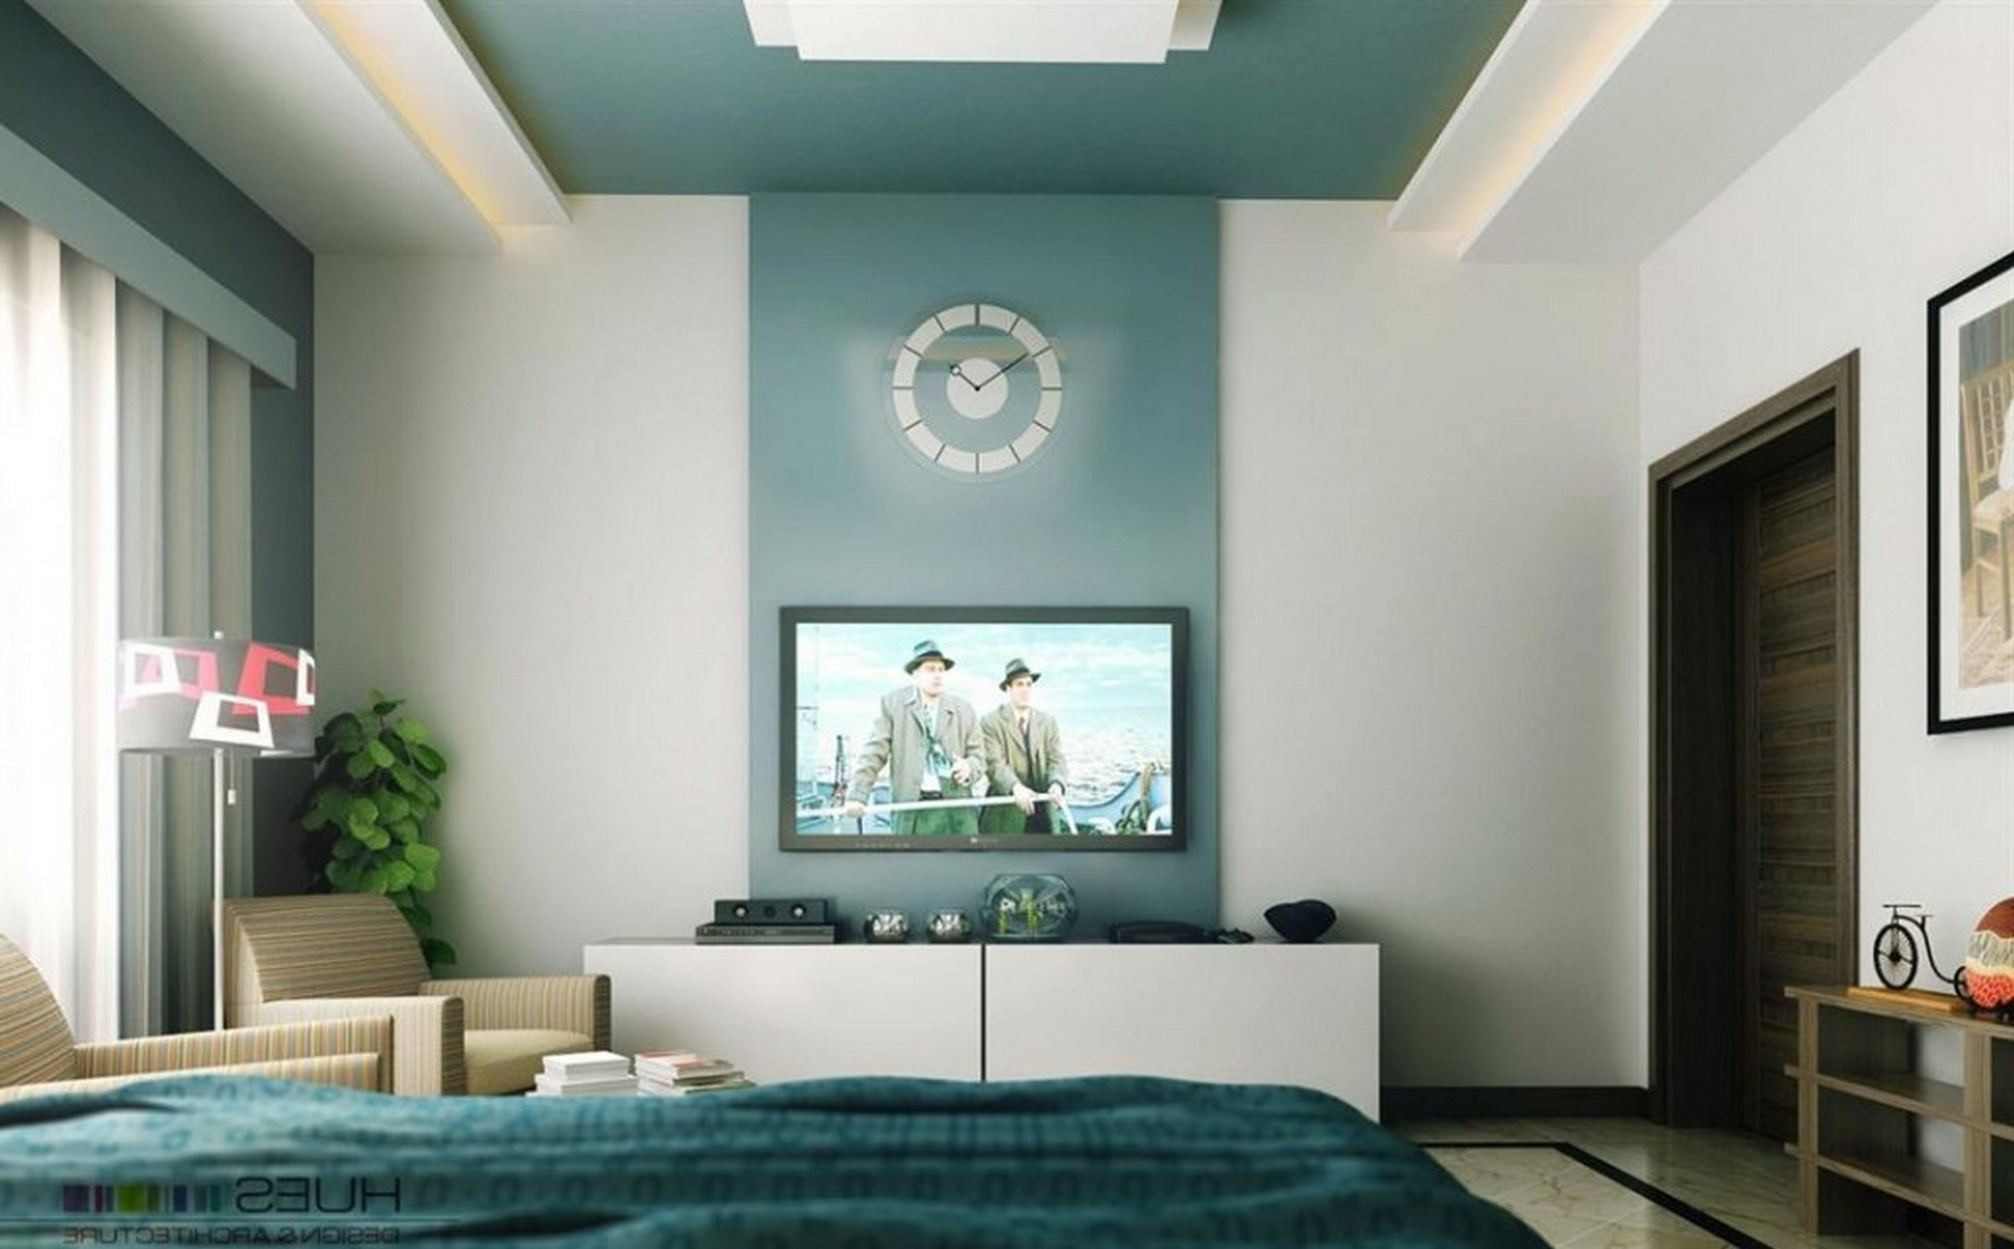 Best ideas about Two Accent Walls . Save or Pin 2 Accent Walls In Bedroom e Big Wooden Standing Light Now.